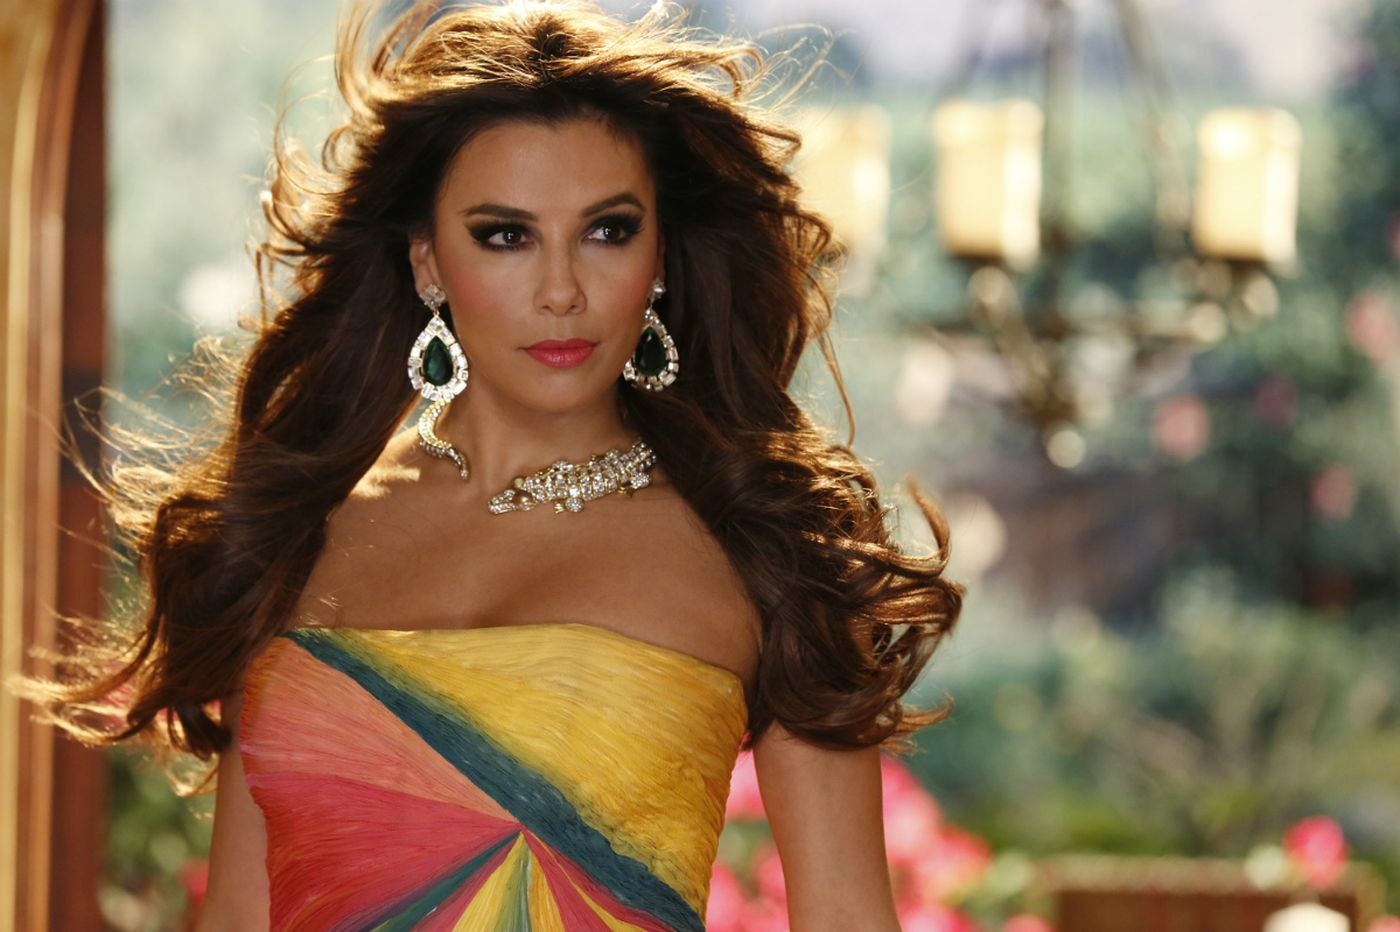 Review: Eva Longoria owns NBC's 'Telenovela'